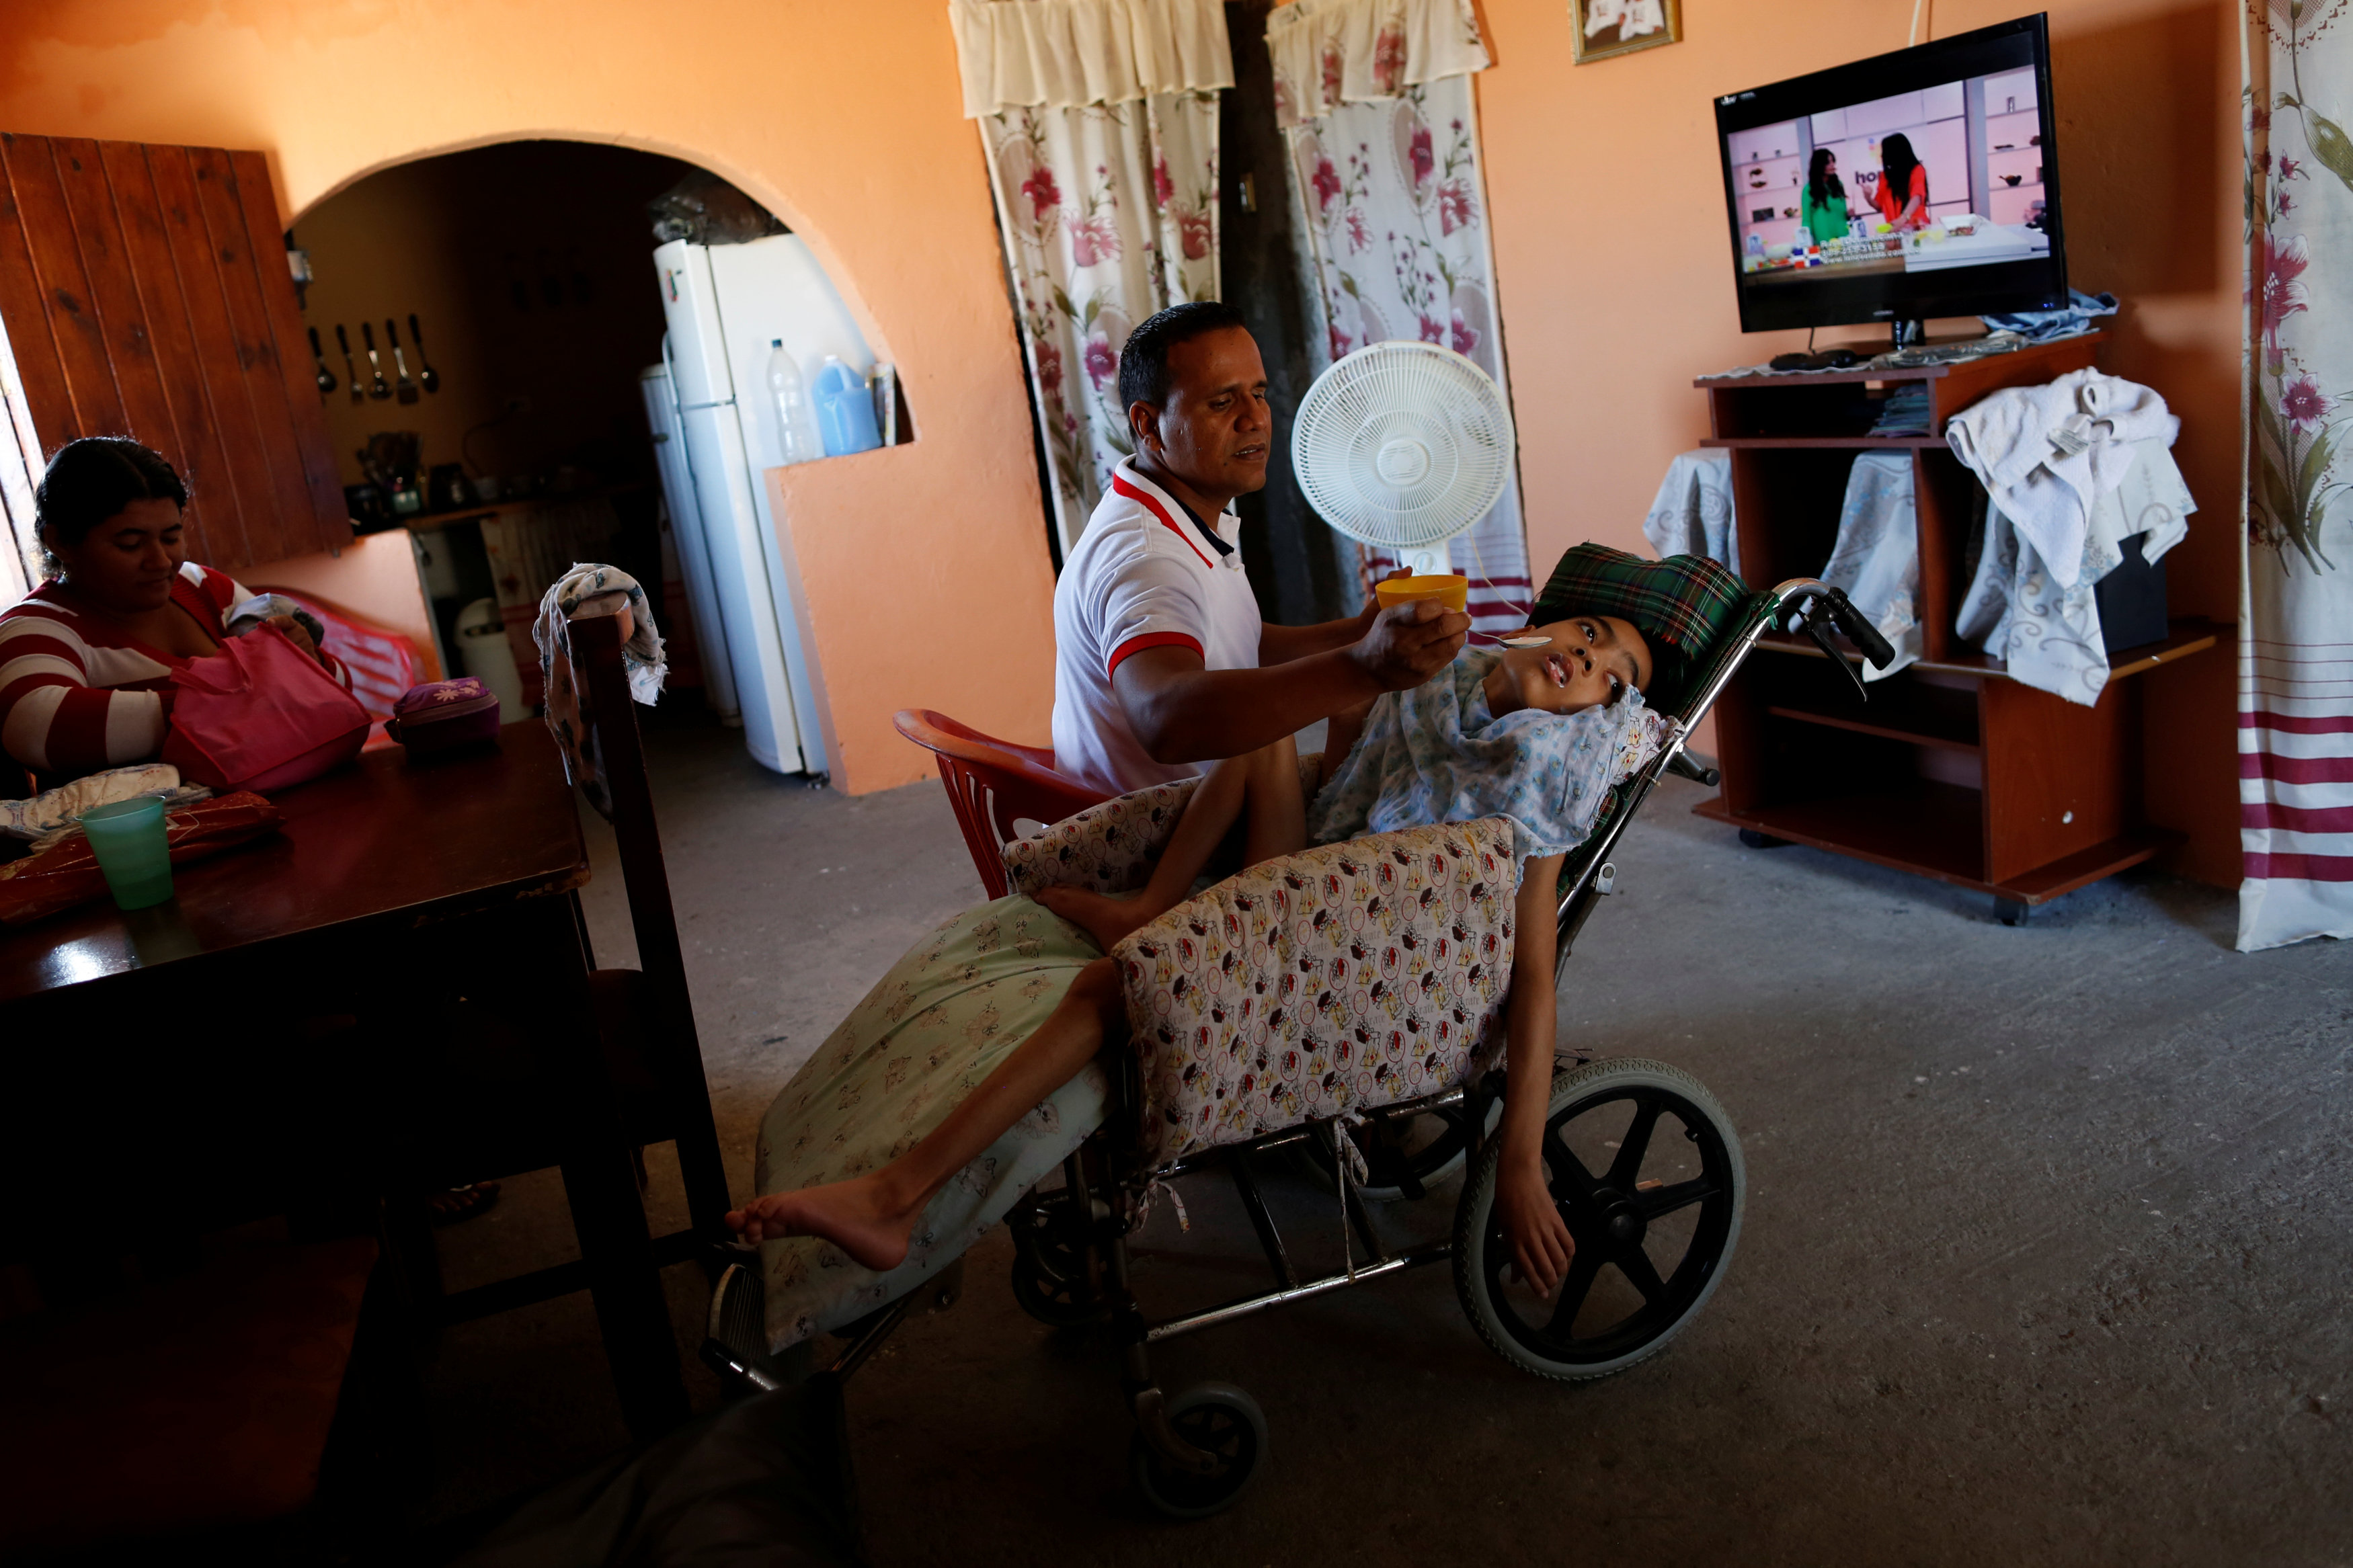 Miguel Anton (C) feeds his son Jose Gregorio Anton, 11, a neurological patient being treated with anticonvulsants, at their house in La Guaira, Venezuela February 20, 2017. REUTERS/Carlos Garcia Rawlins